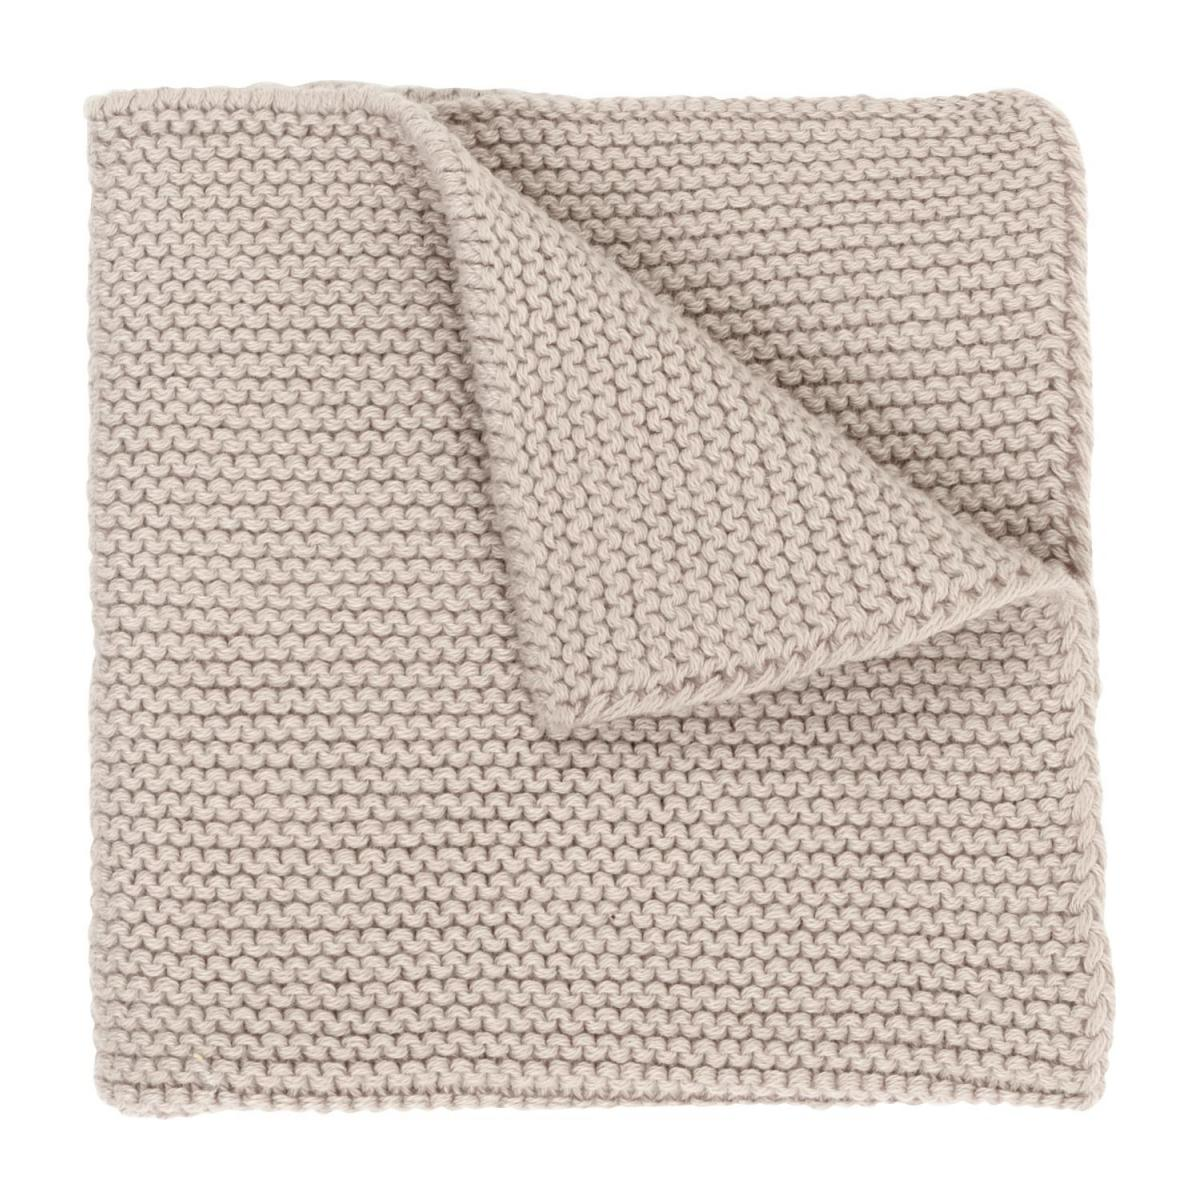 Lot de 2 serviettes de table en coton - 25 x 25 cm - Beige n°2